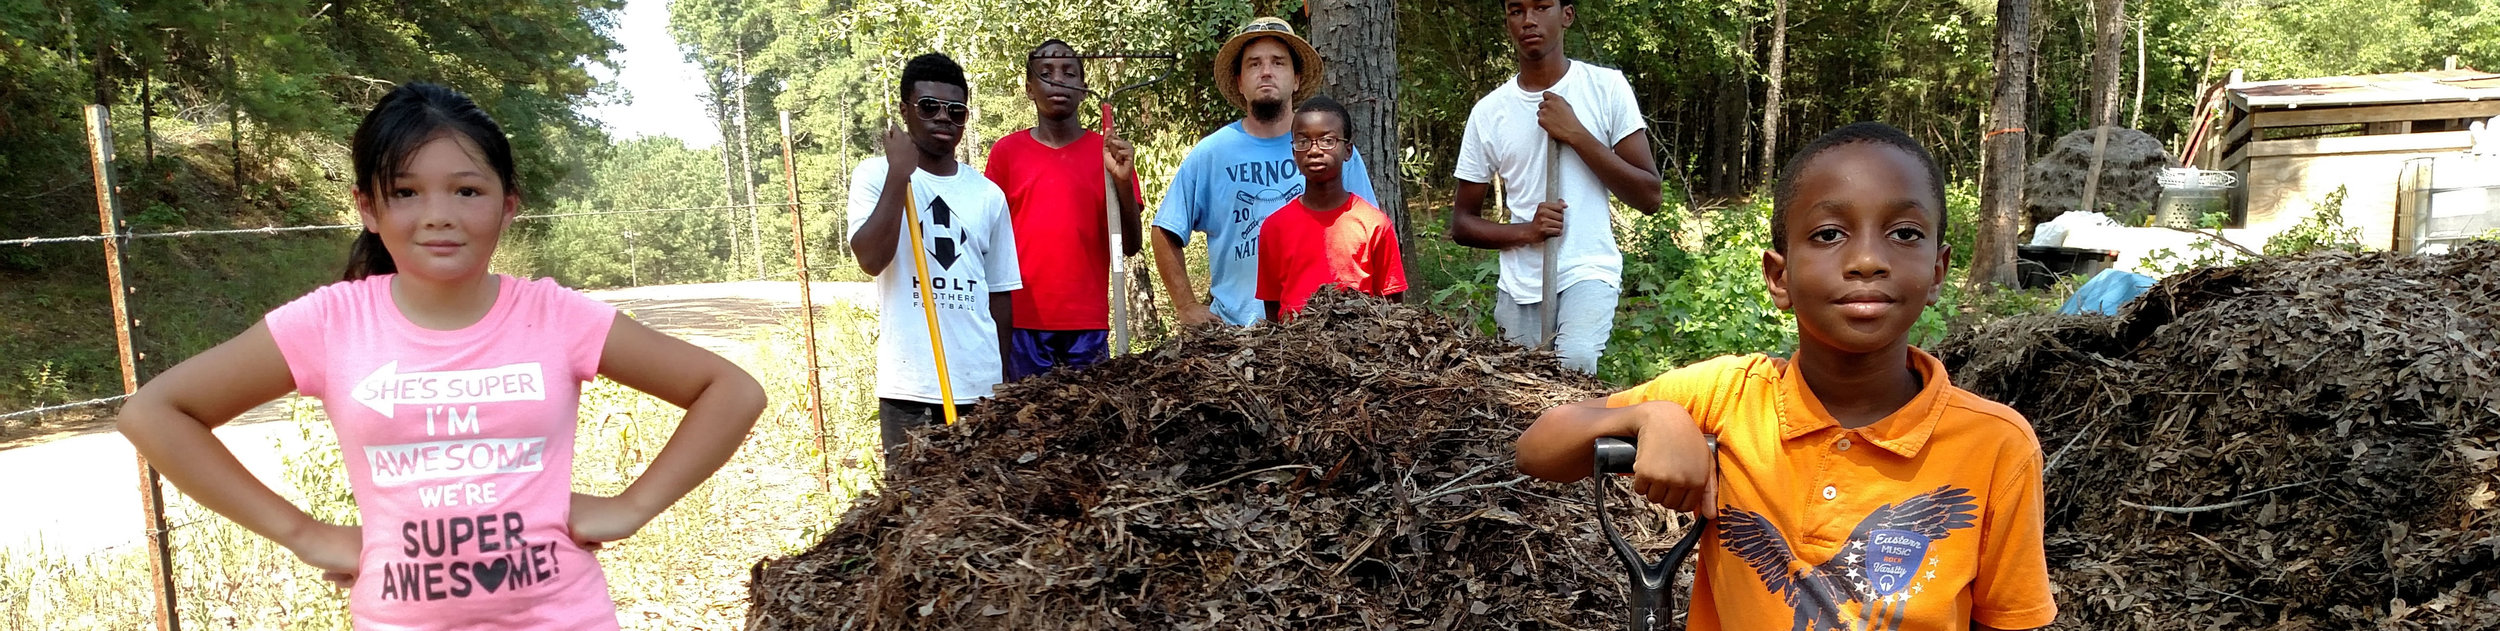 campti-field-of-dreams-building-compost-pile-e1522728657750.jpg